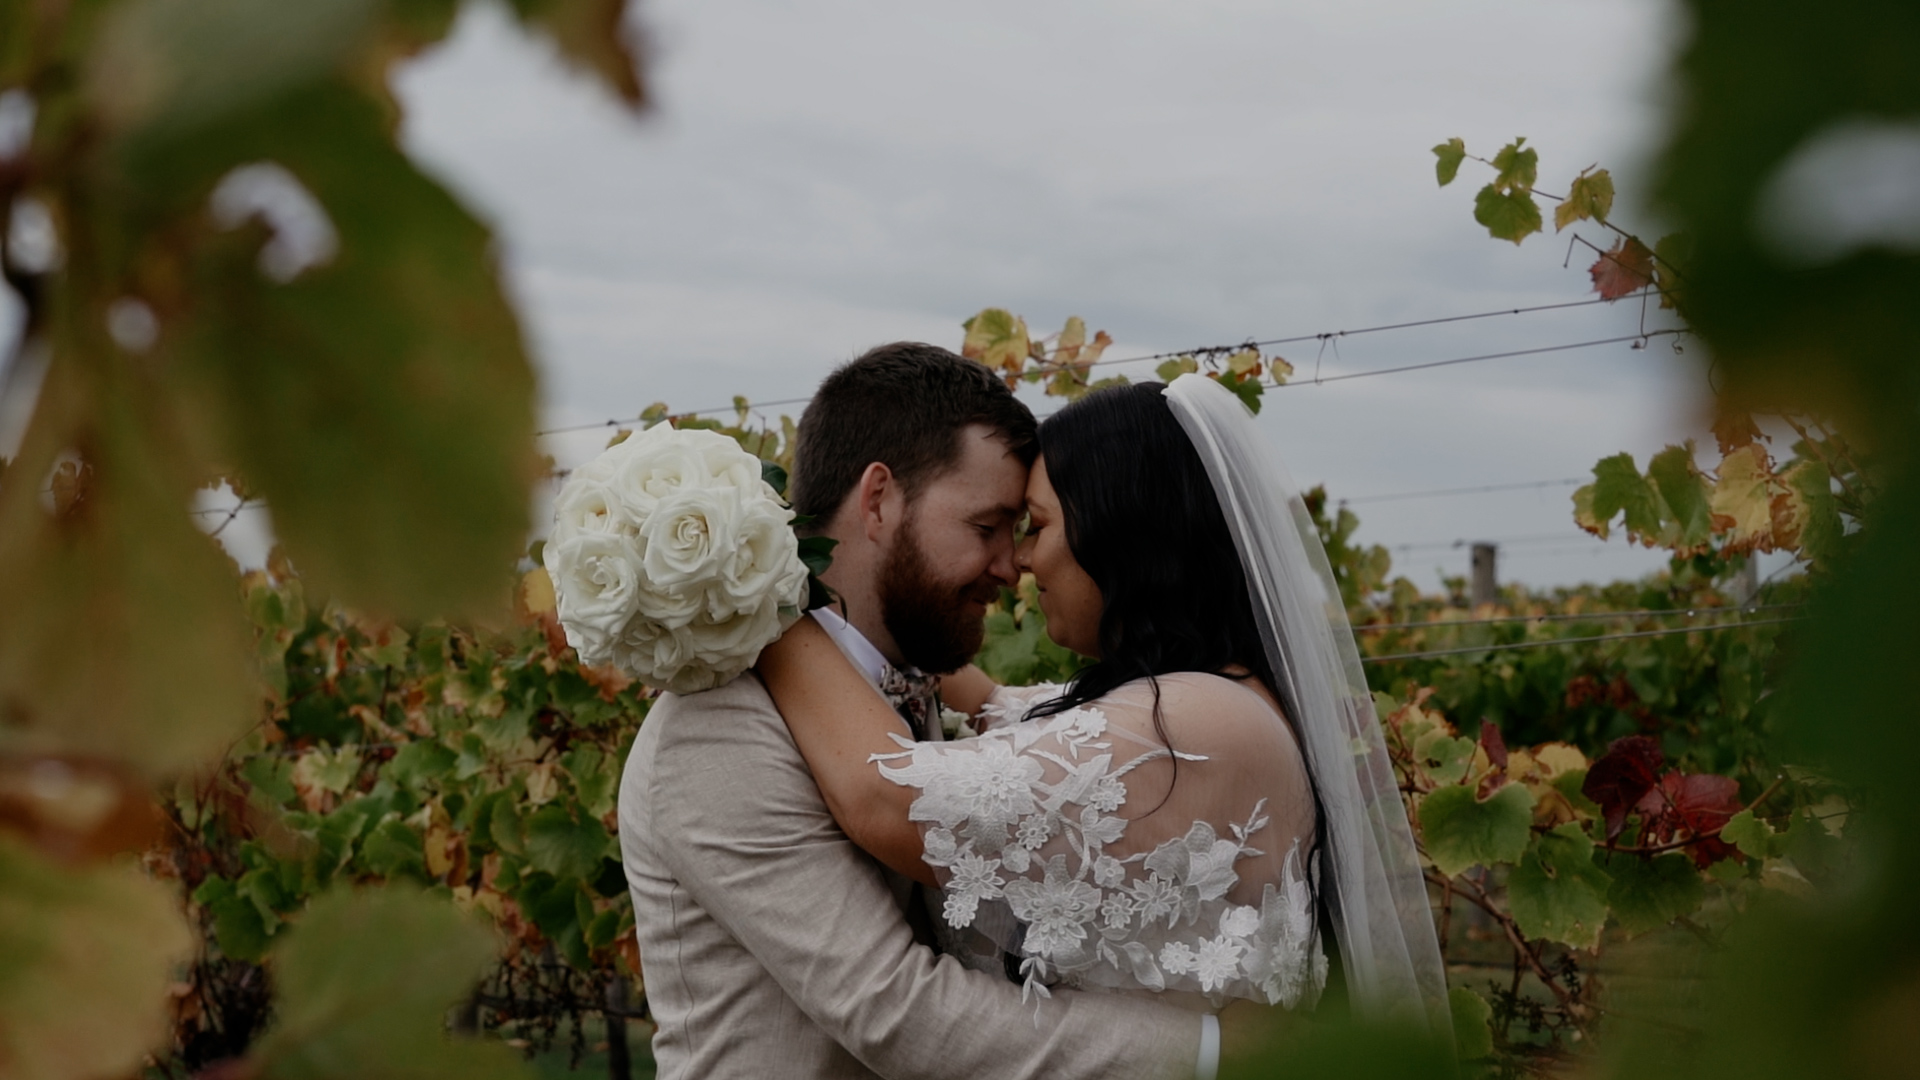 Bride and groom touching foreheads on wedding day